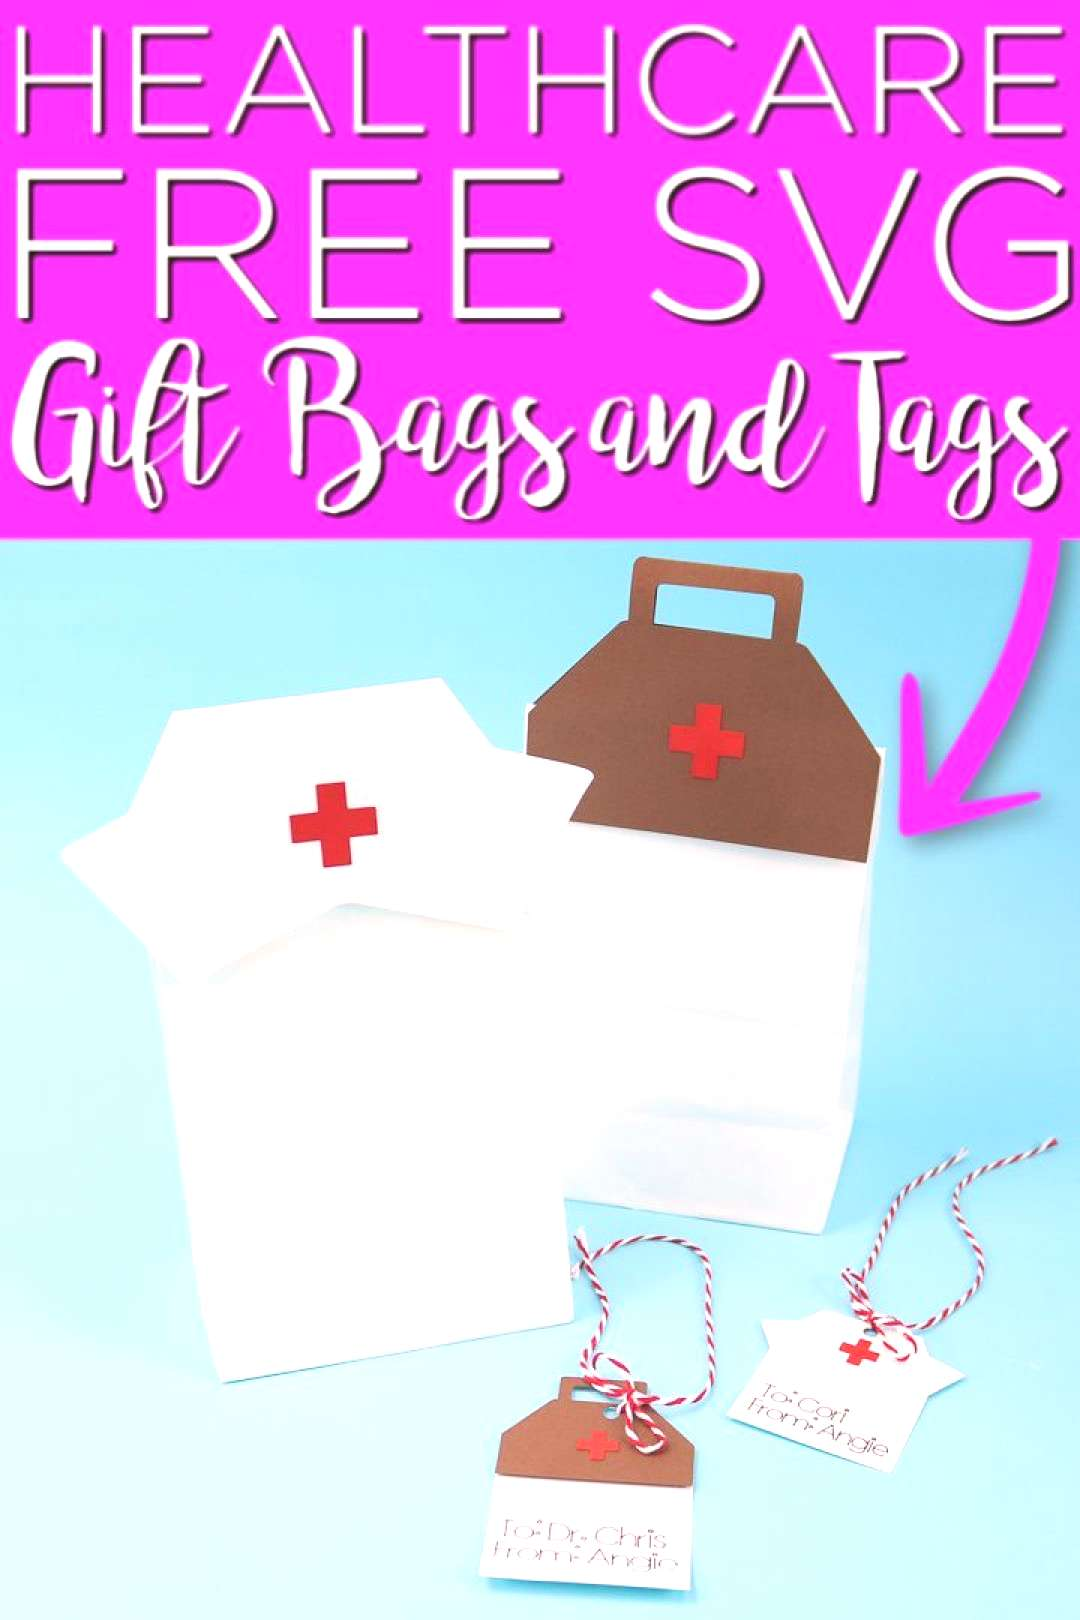 Gift bag toppers and tags for healthcare workers! Give thank you gifts for hospital staff with our